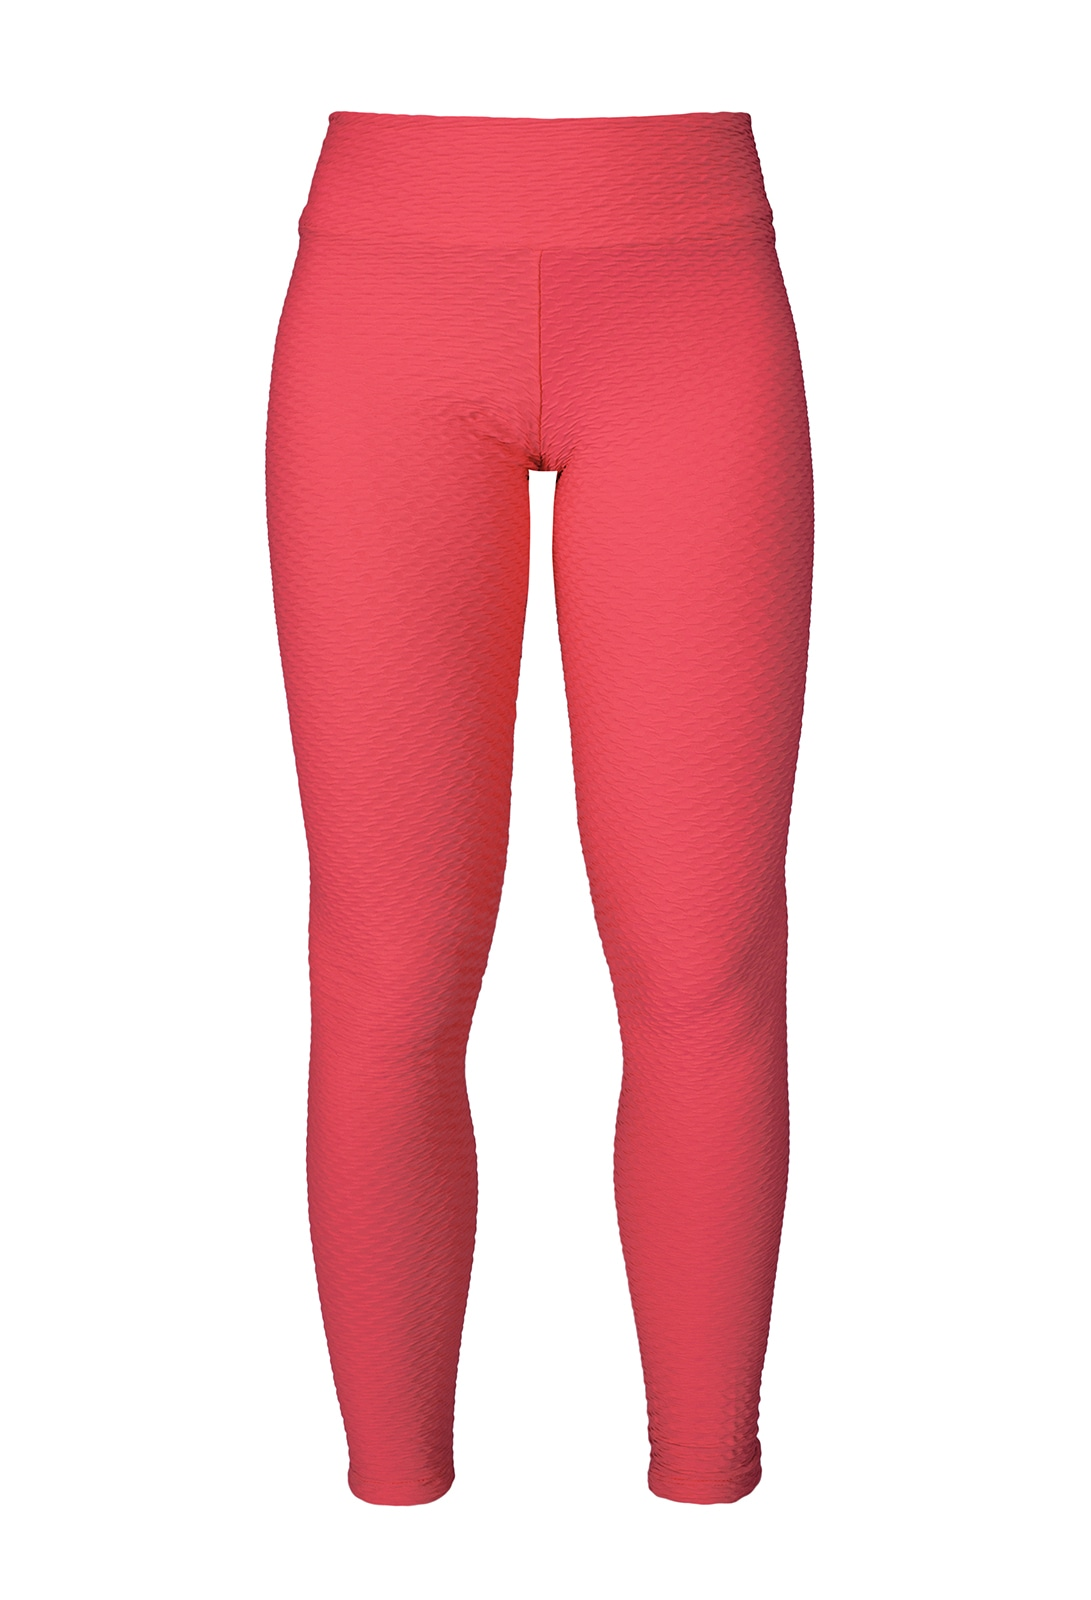 Neon Pink Textured Leggings Ideal For Workout Or Play